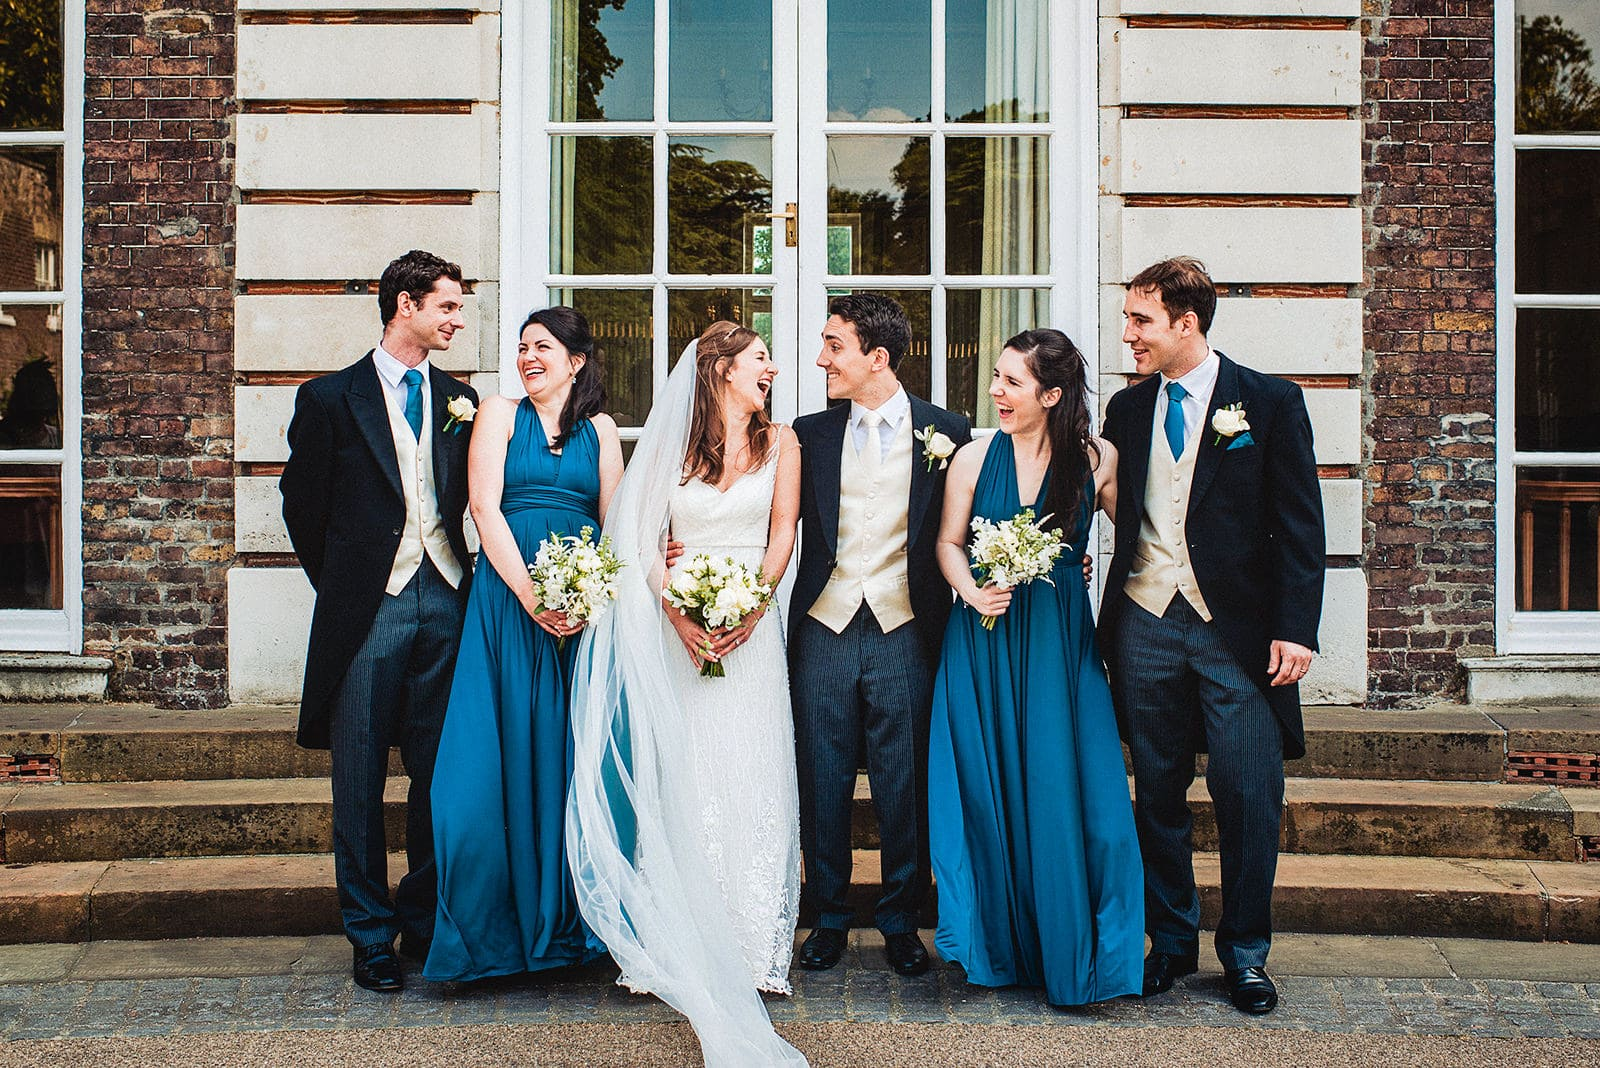 Bride and groom, teal bridesmaids and groomsmen laugh outside the Hurlingham Club